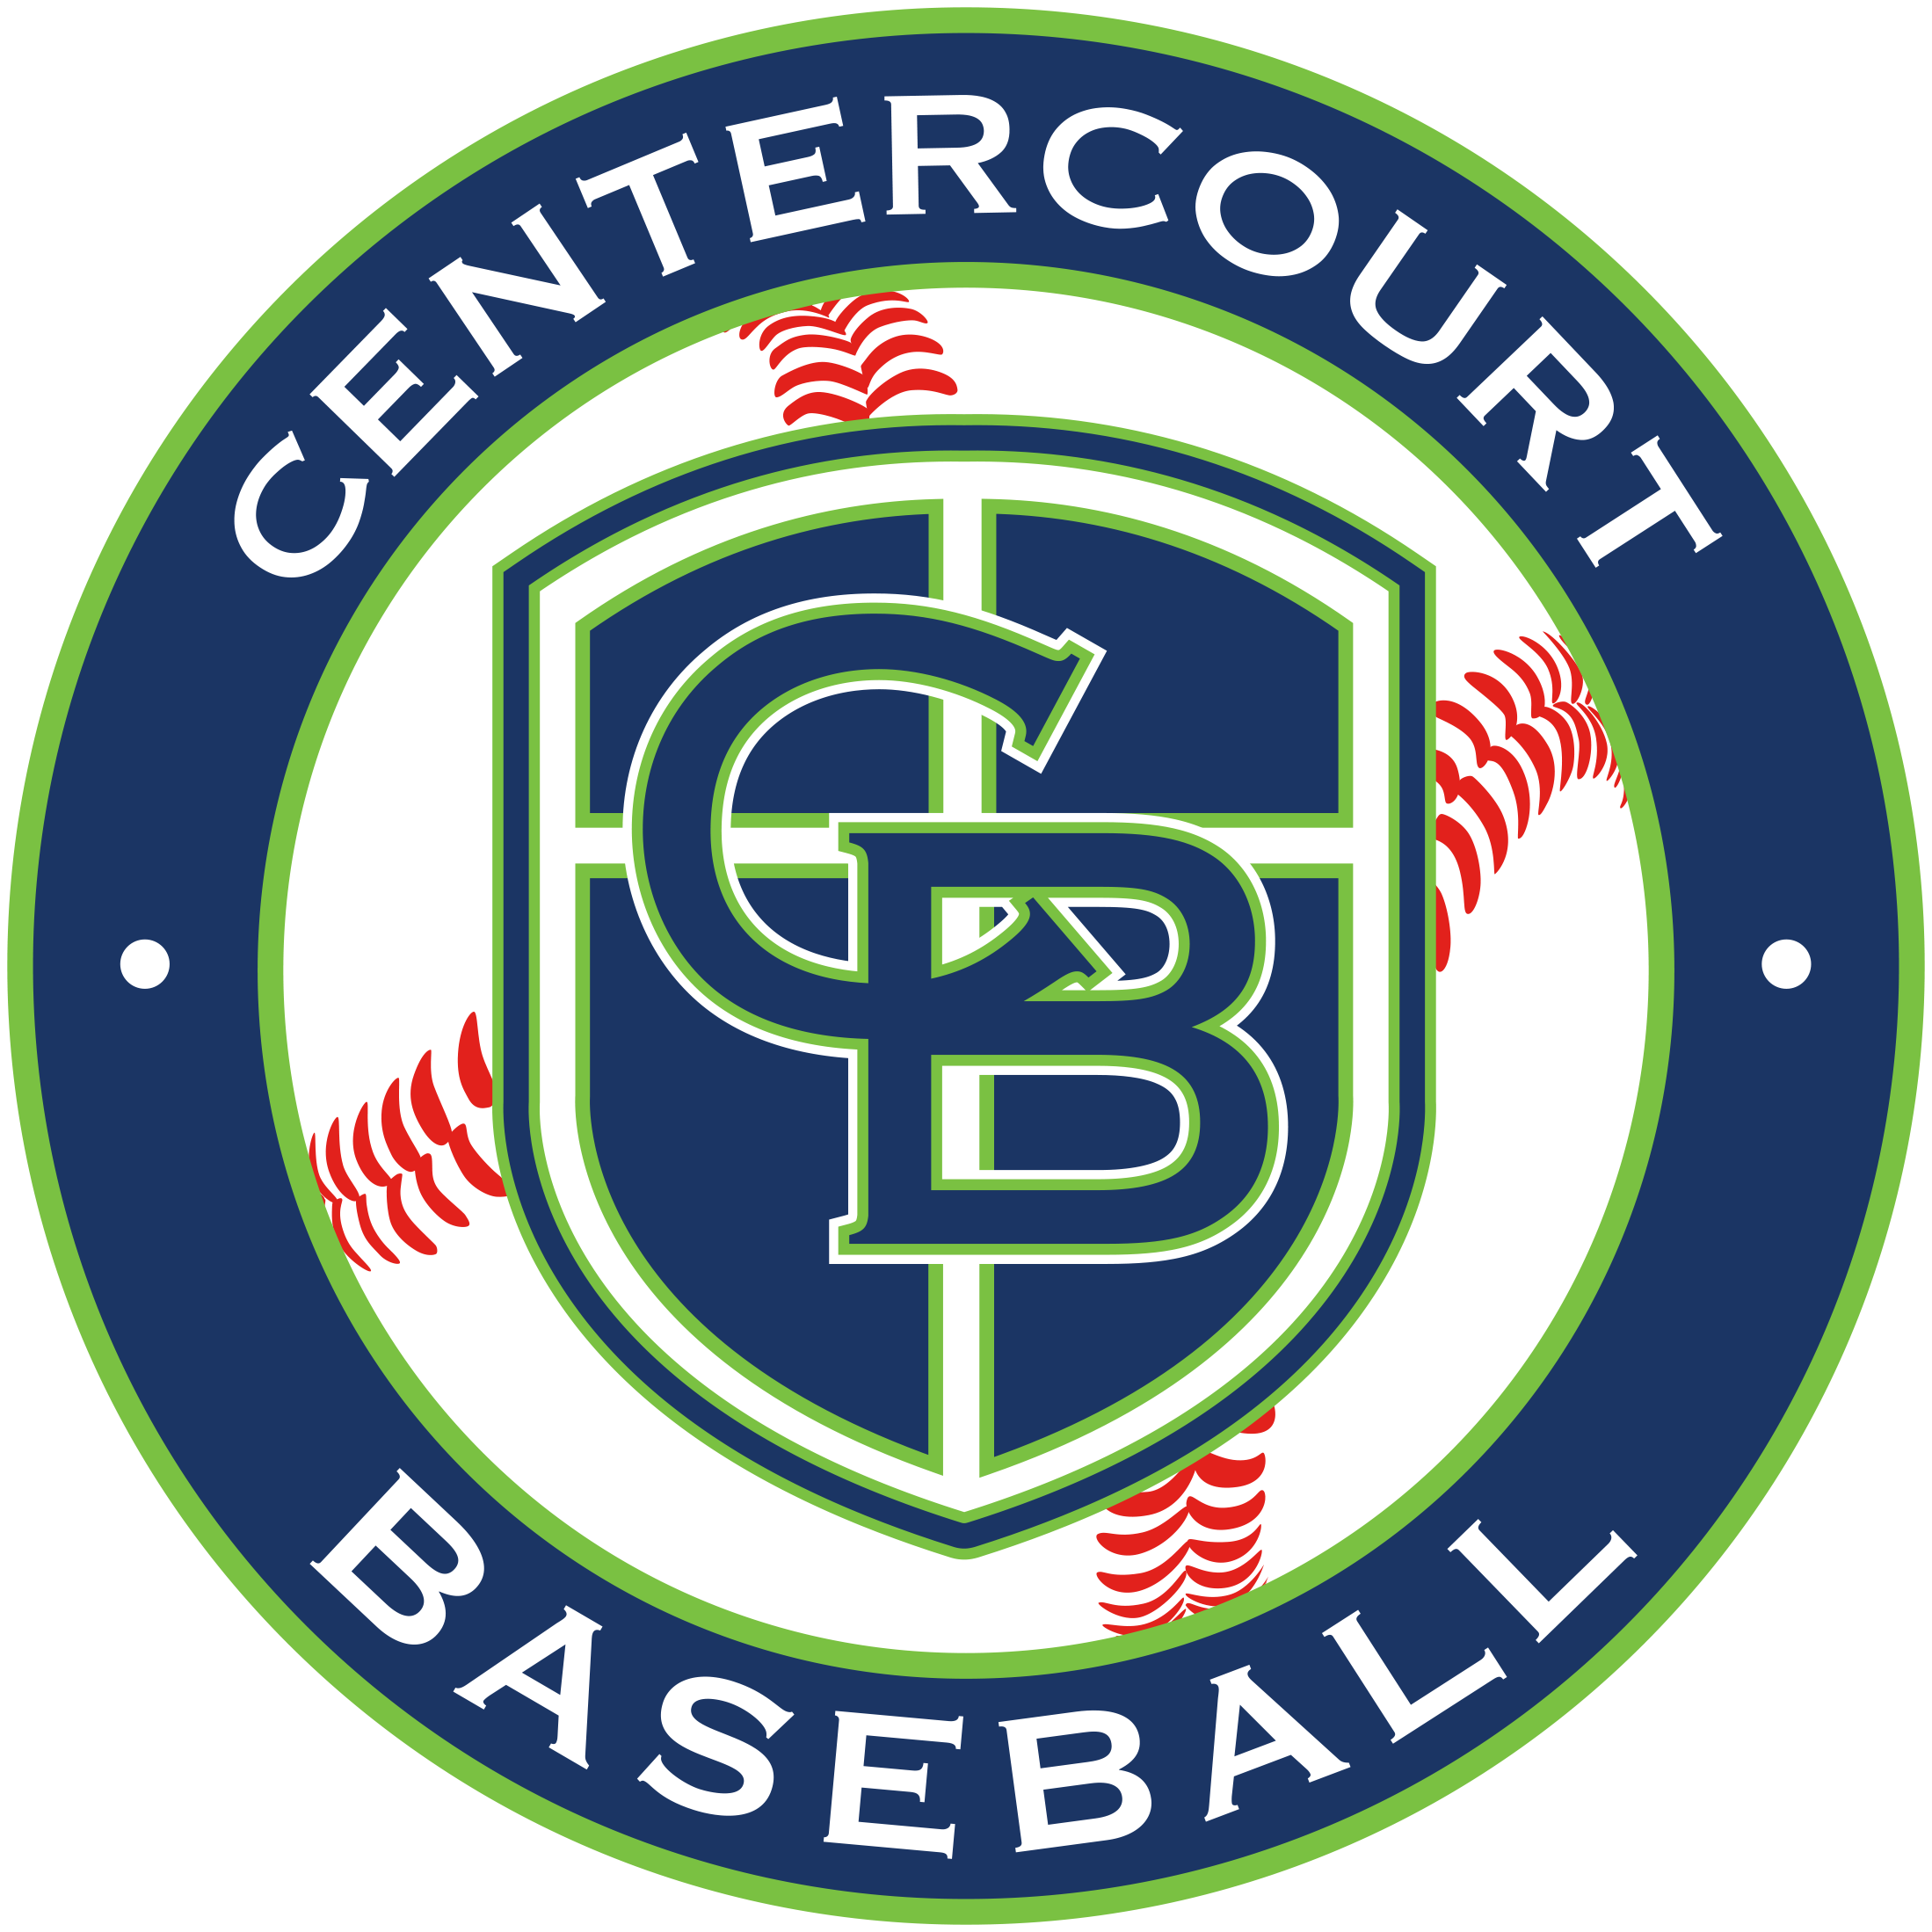 Centercourt Baseball 10U Indoor Tournament